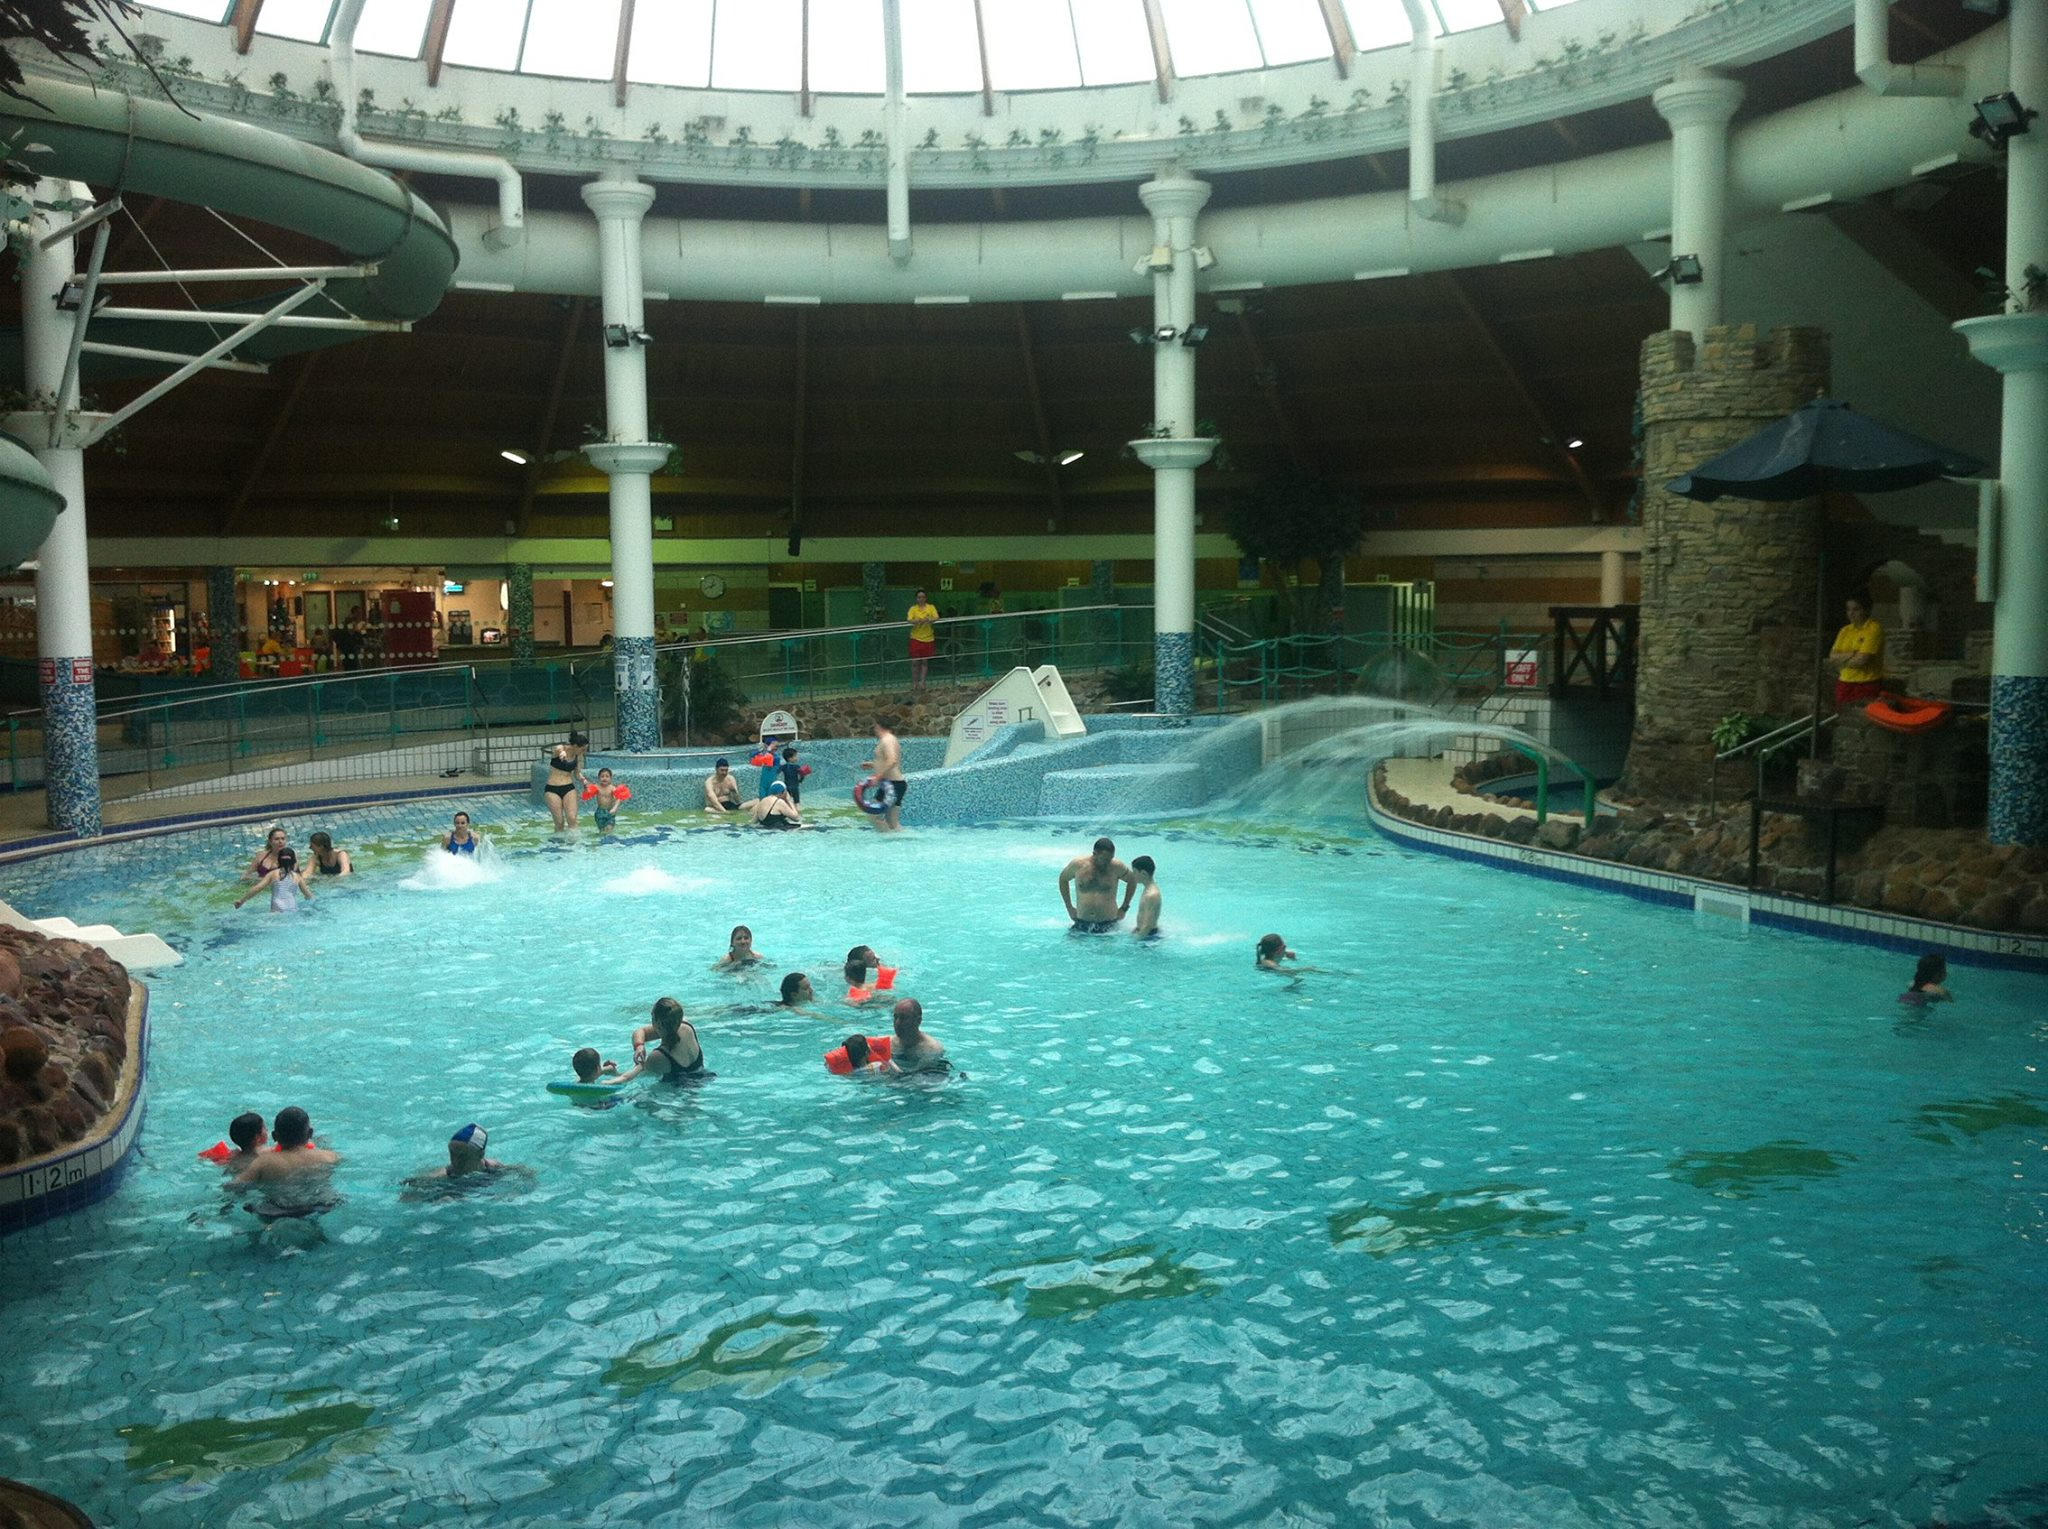 Getting outdoors 8 of the best waterparks around ireland for Tralee swimming pool timetable